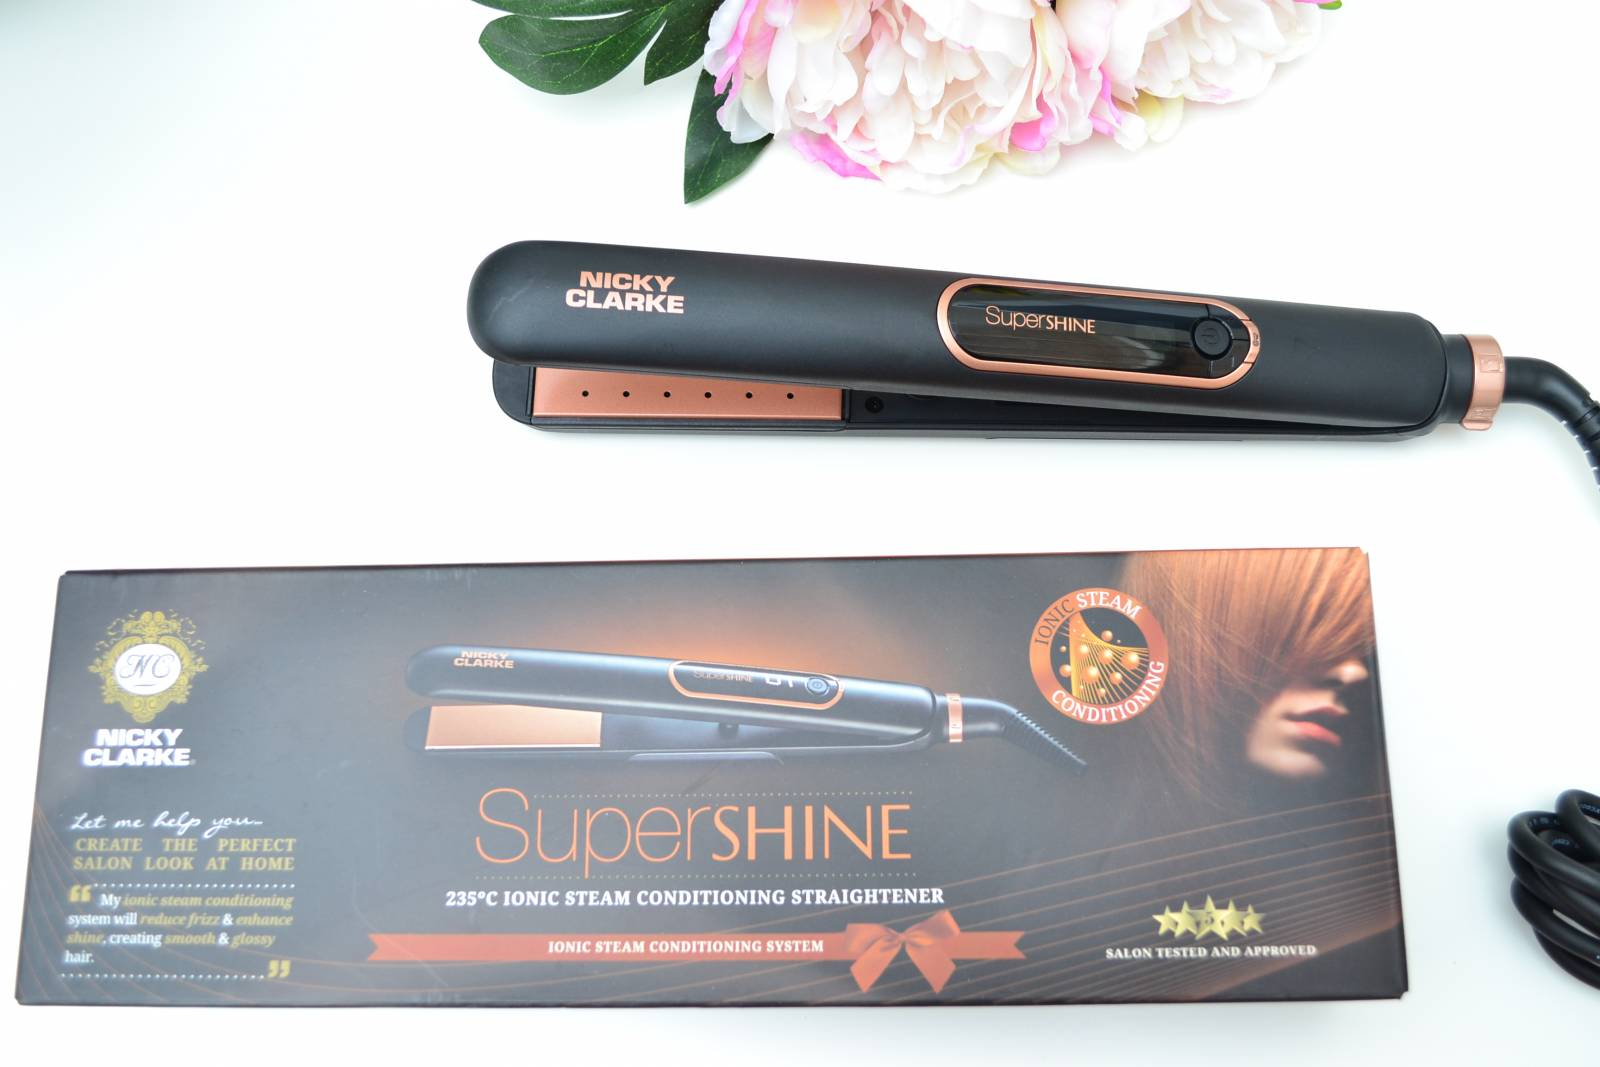 nicky-clarke-supershine-straightener